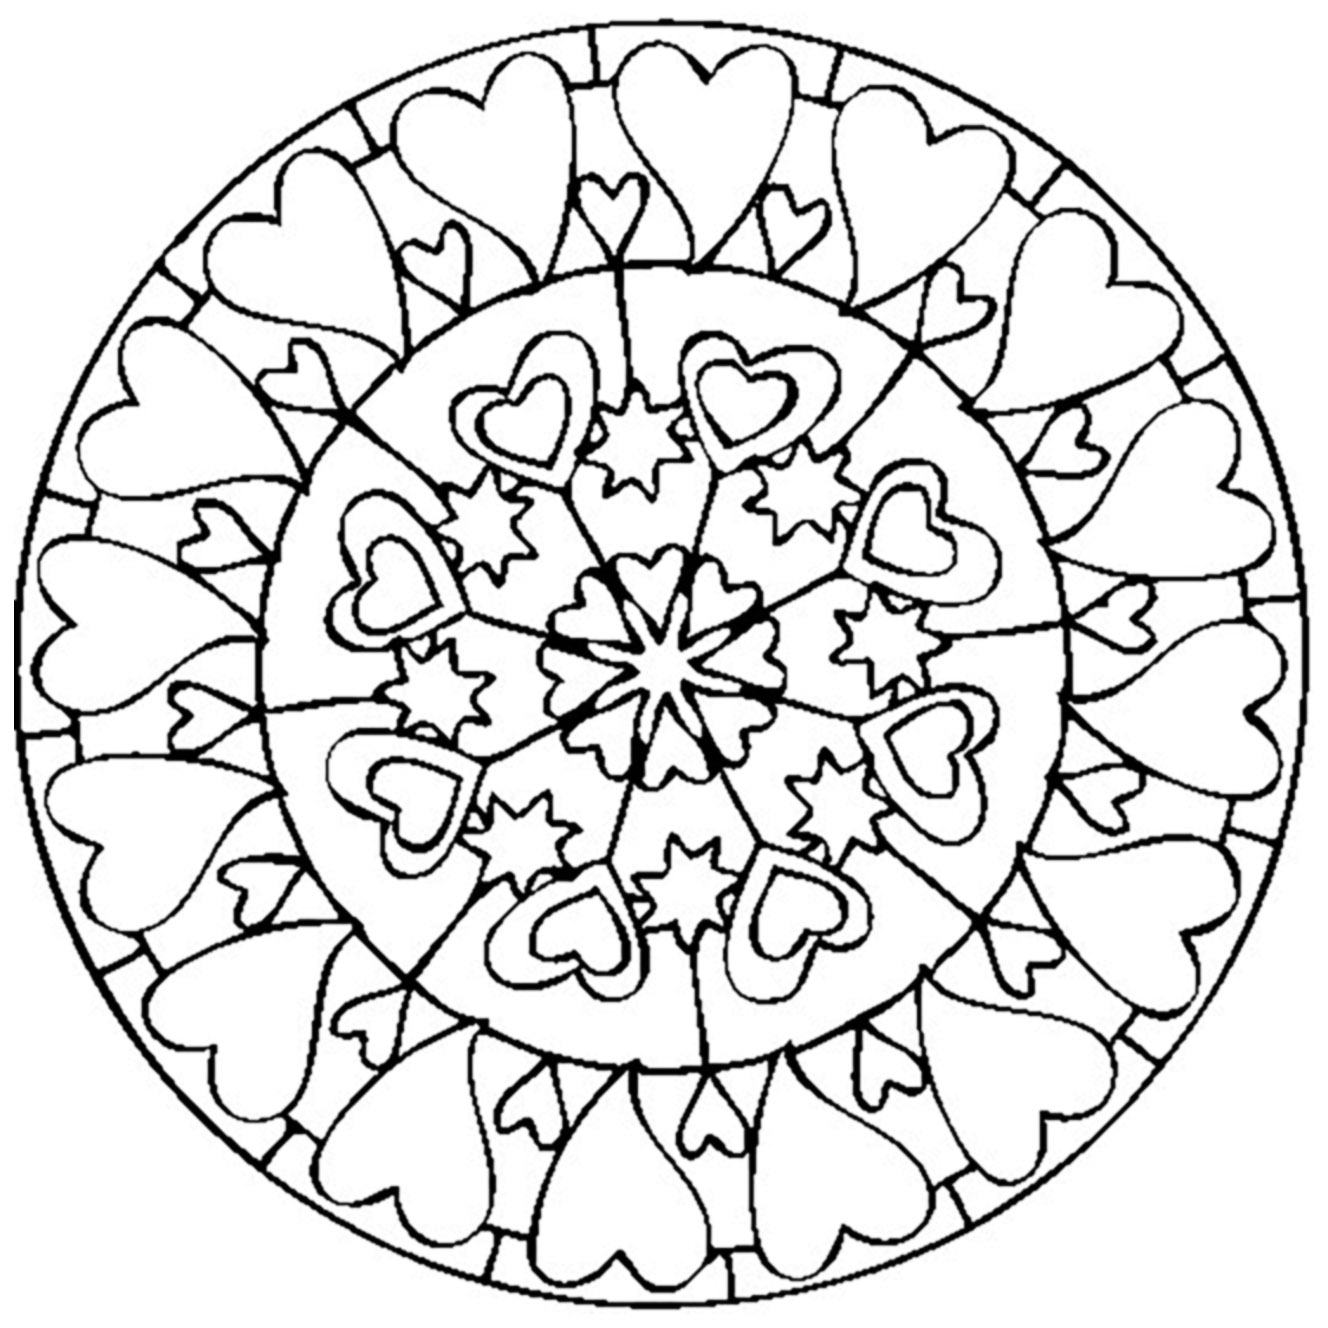 simple mandalas to color simple mandala 14 mandalas coloring pages for kids to mandalas to color simple